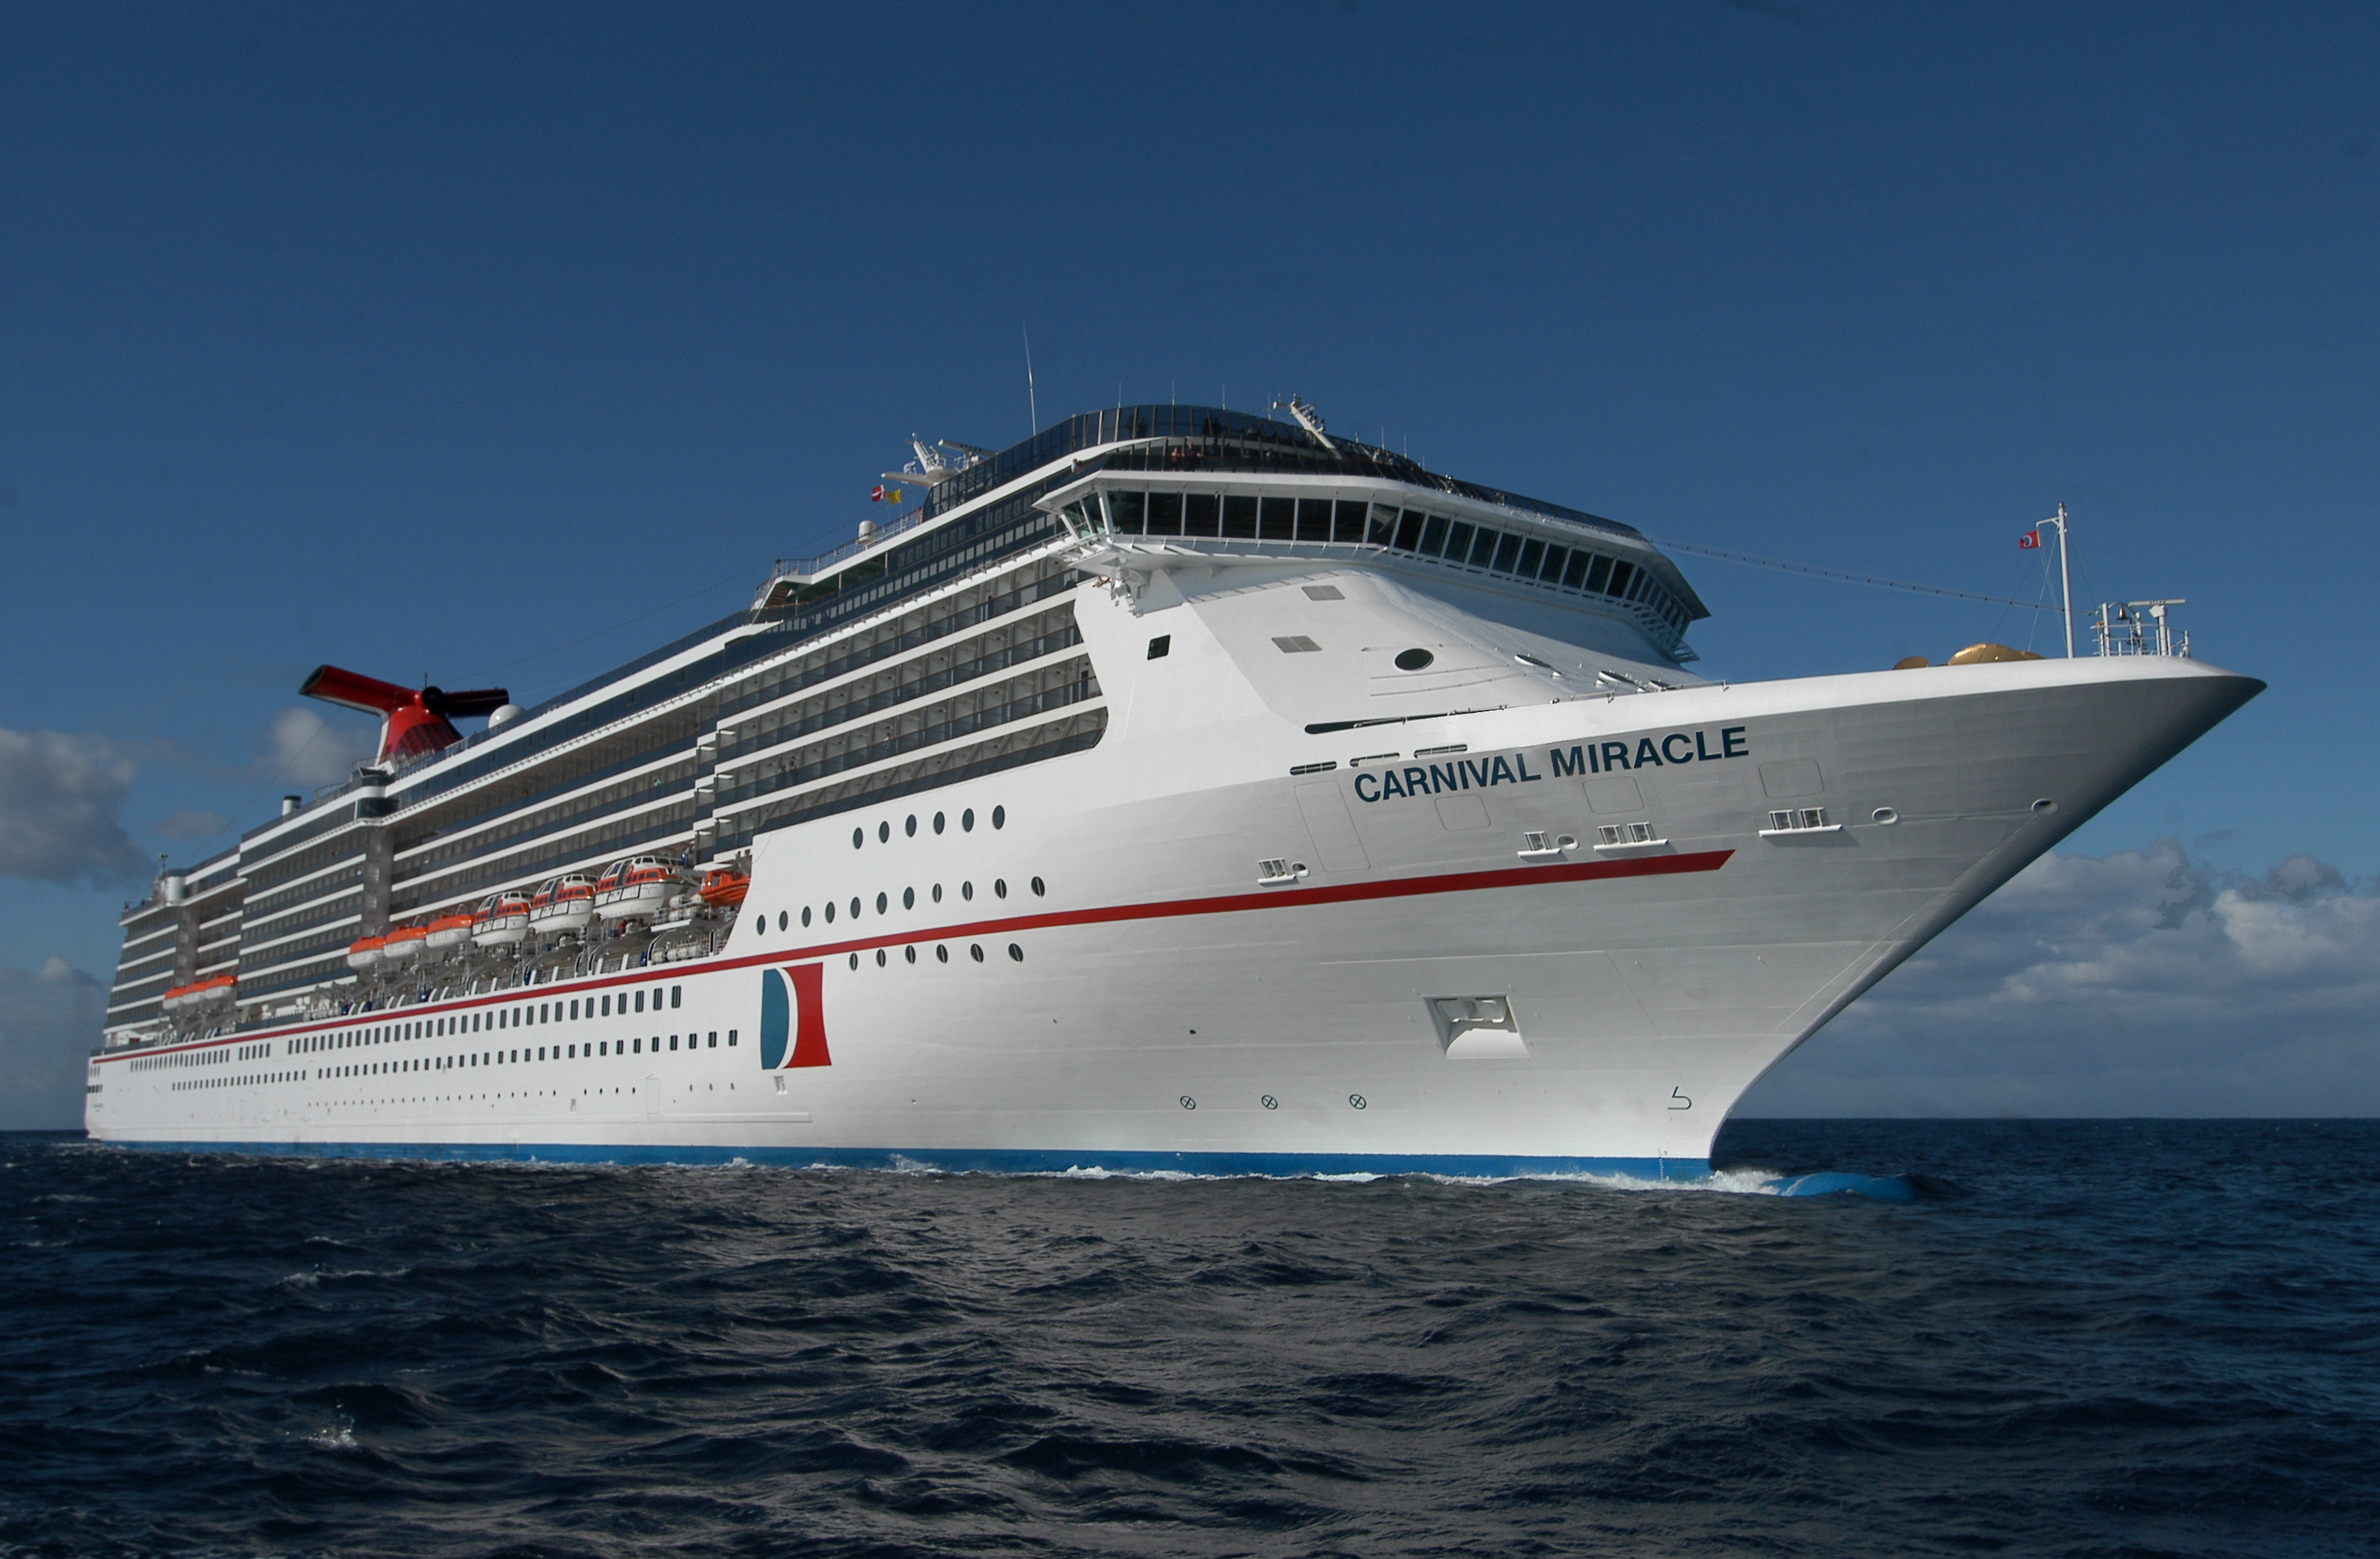 Carnival Miracle to Operate Unique 14-Day Alaska Cruise Round-Trip from Long Beach in September 2017